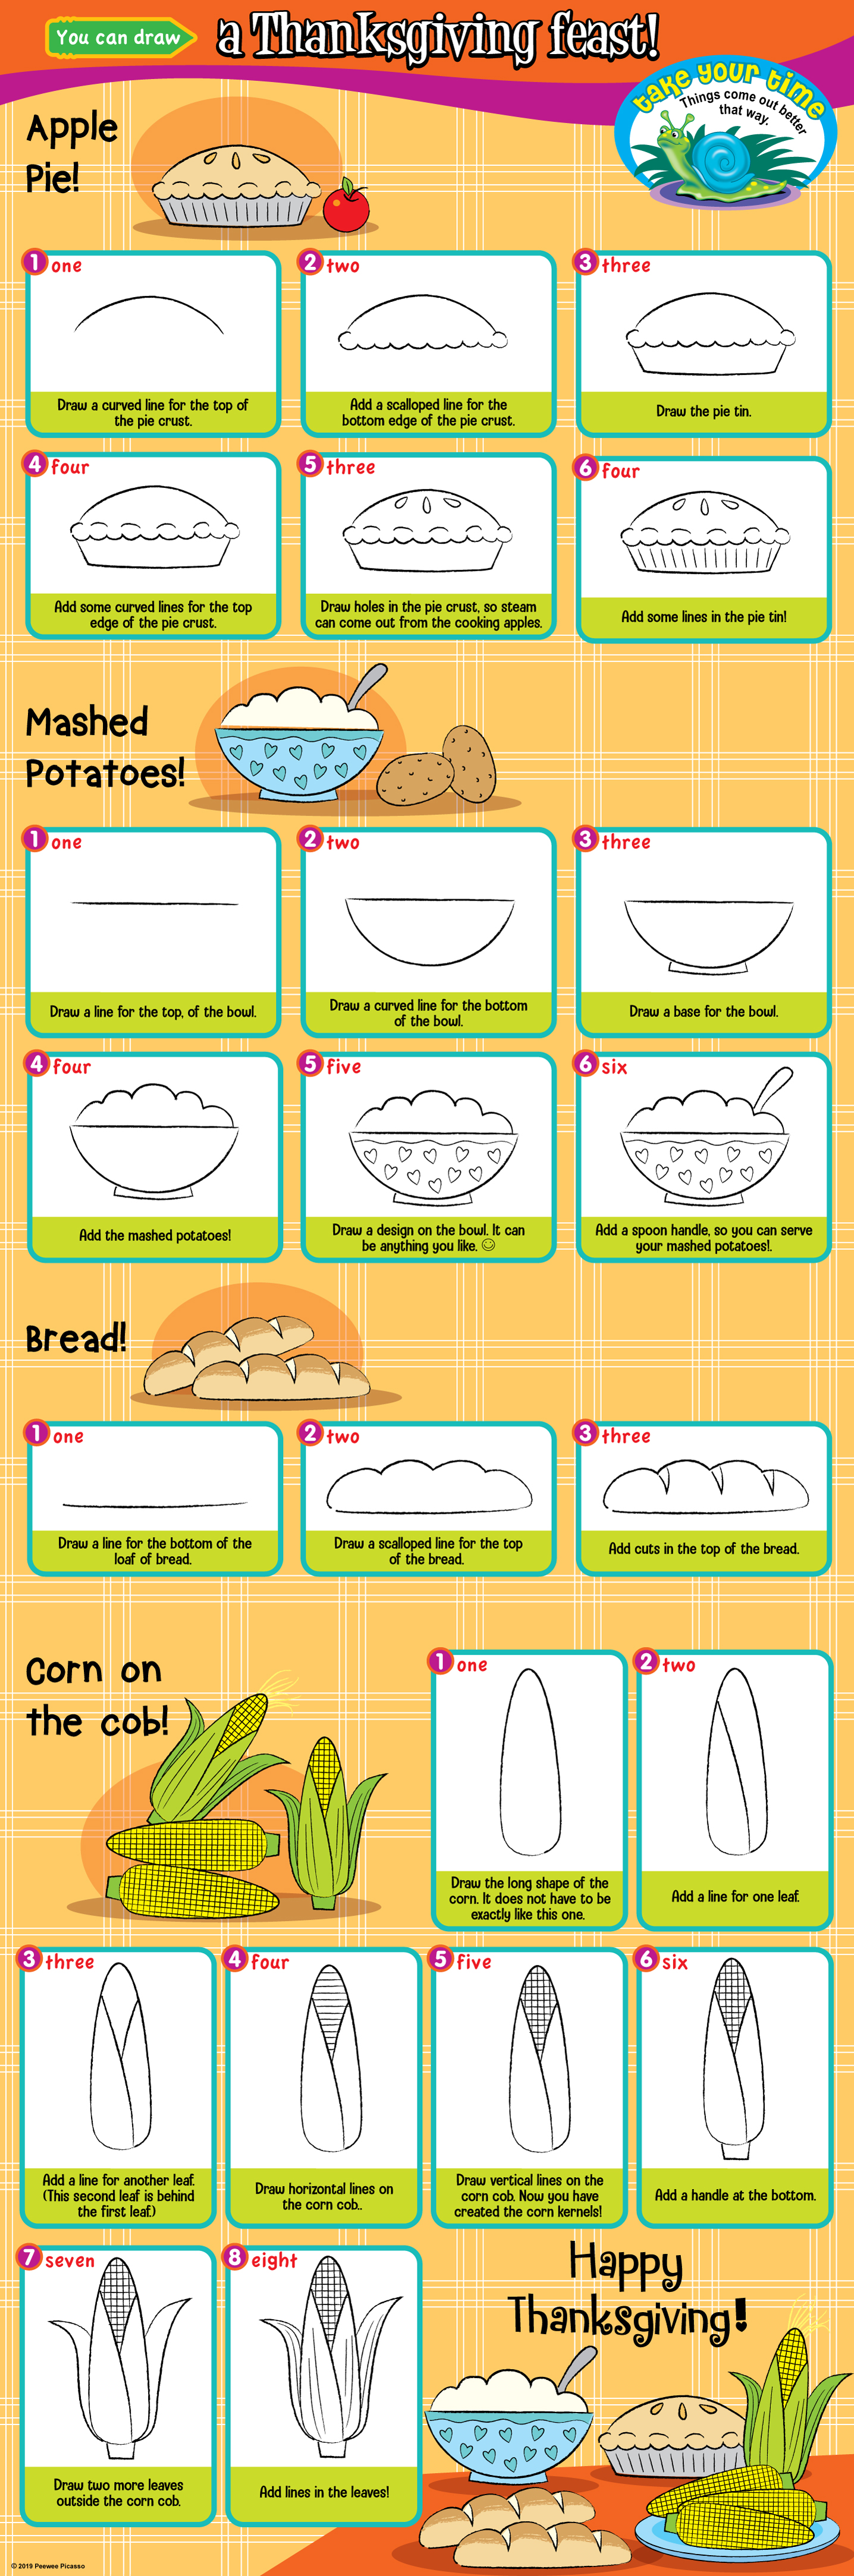 easy steps to draw Thanksgiving feast for children